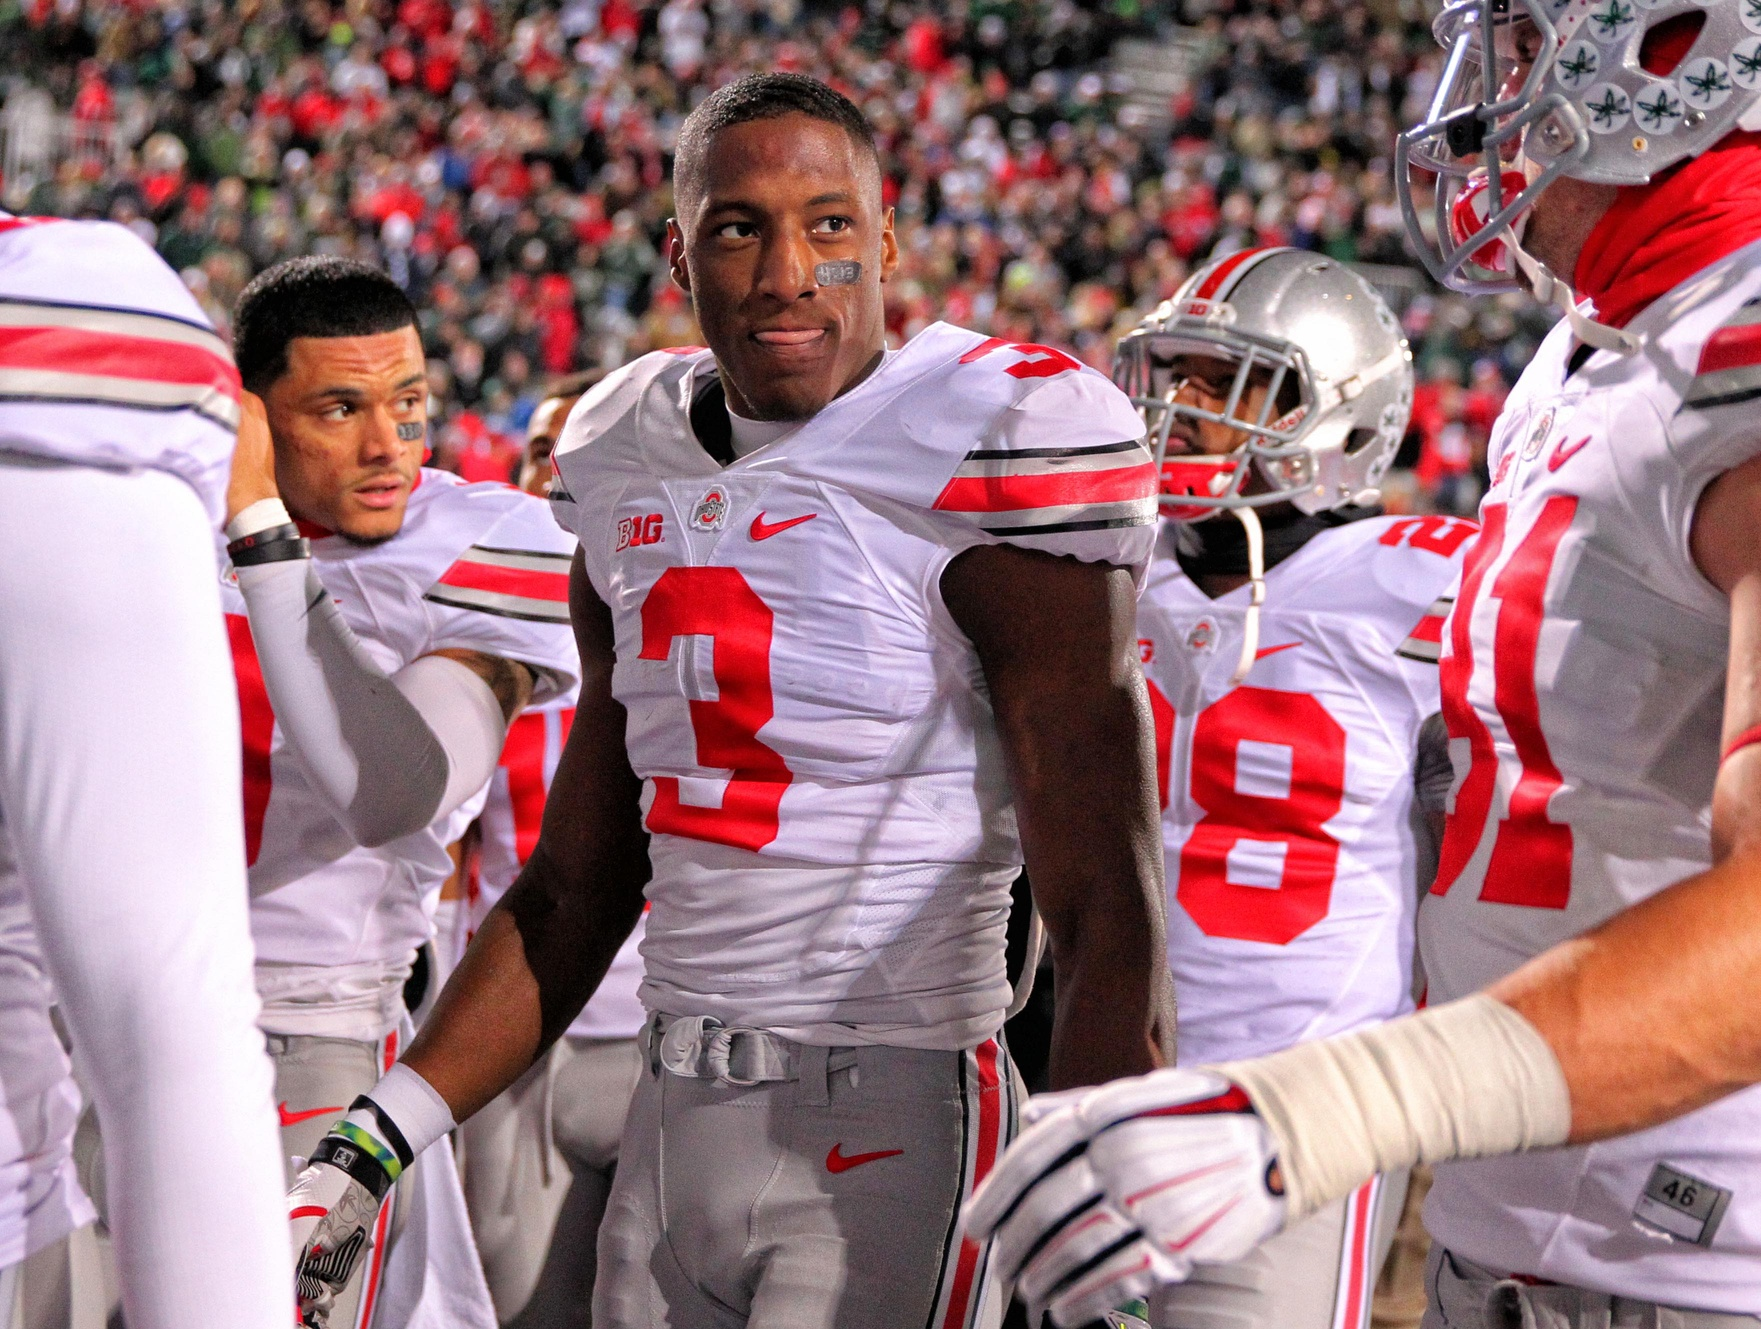 Ohio State WR Michael Thomas doesn't think much of Alabama's